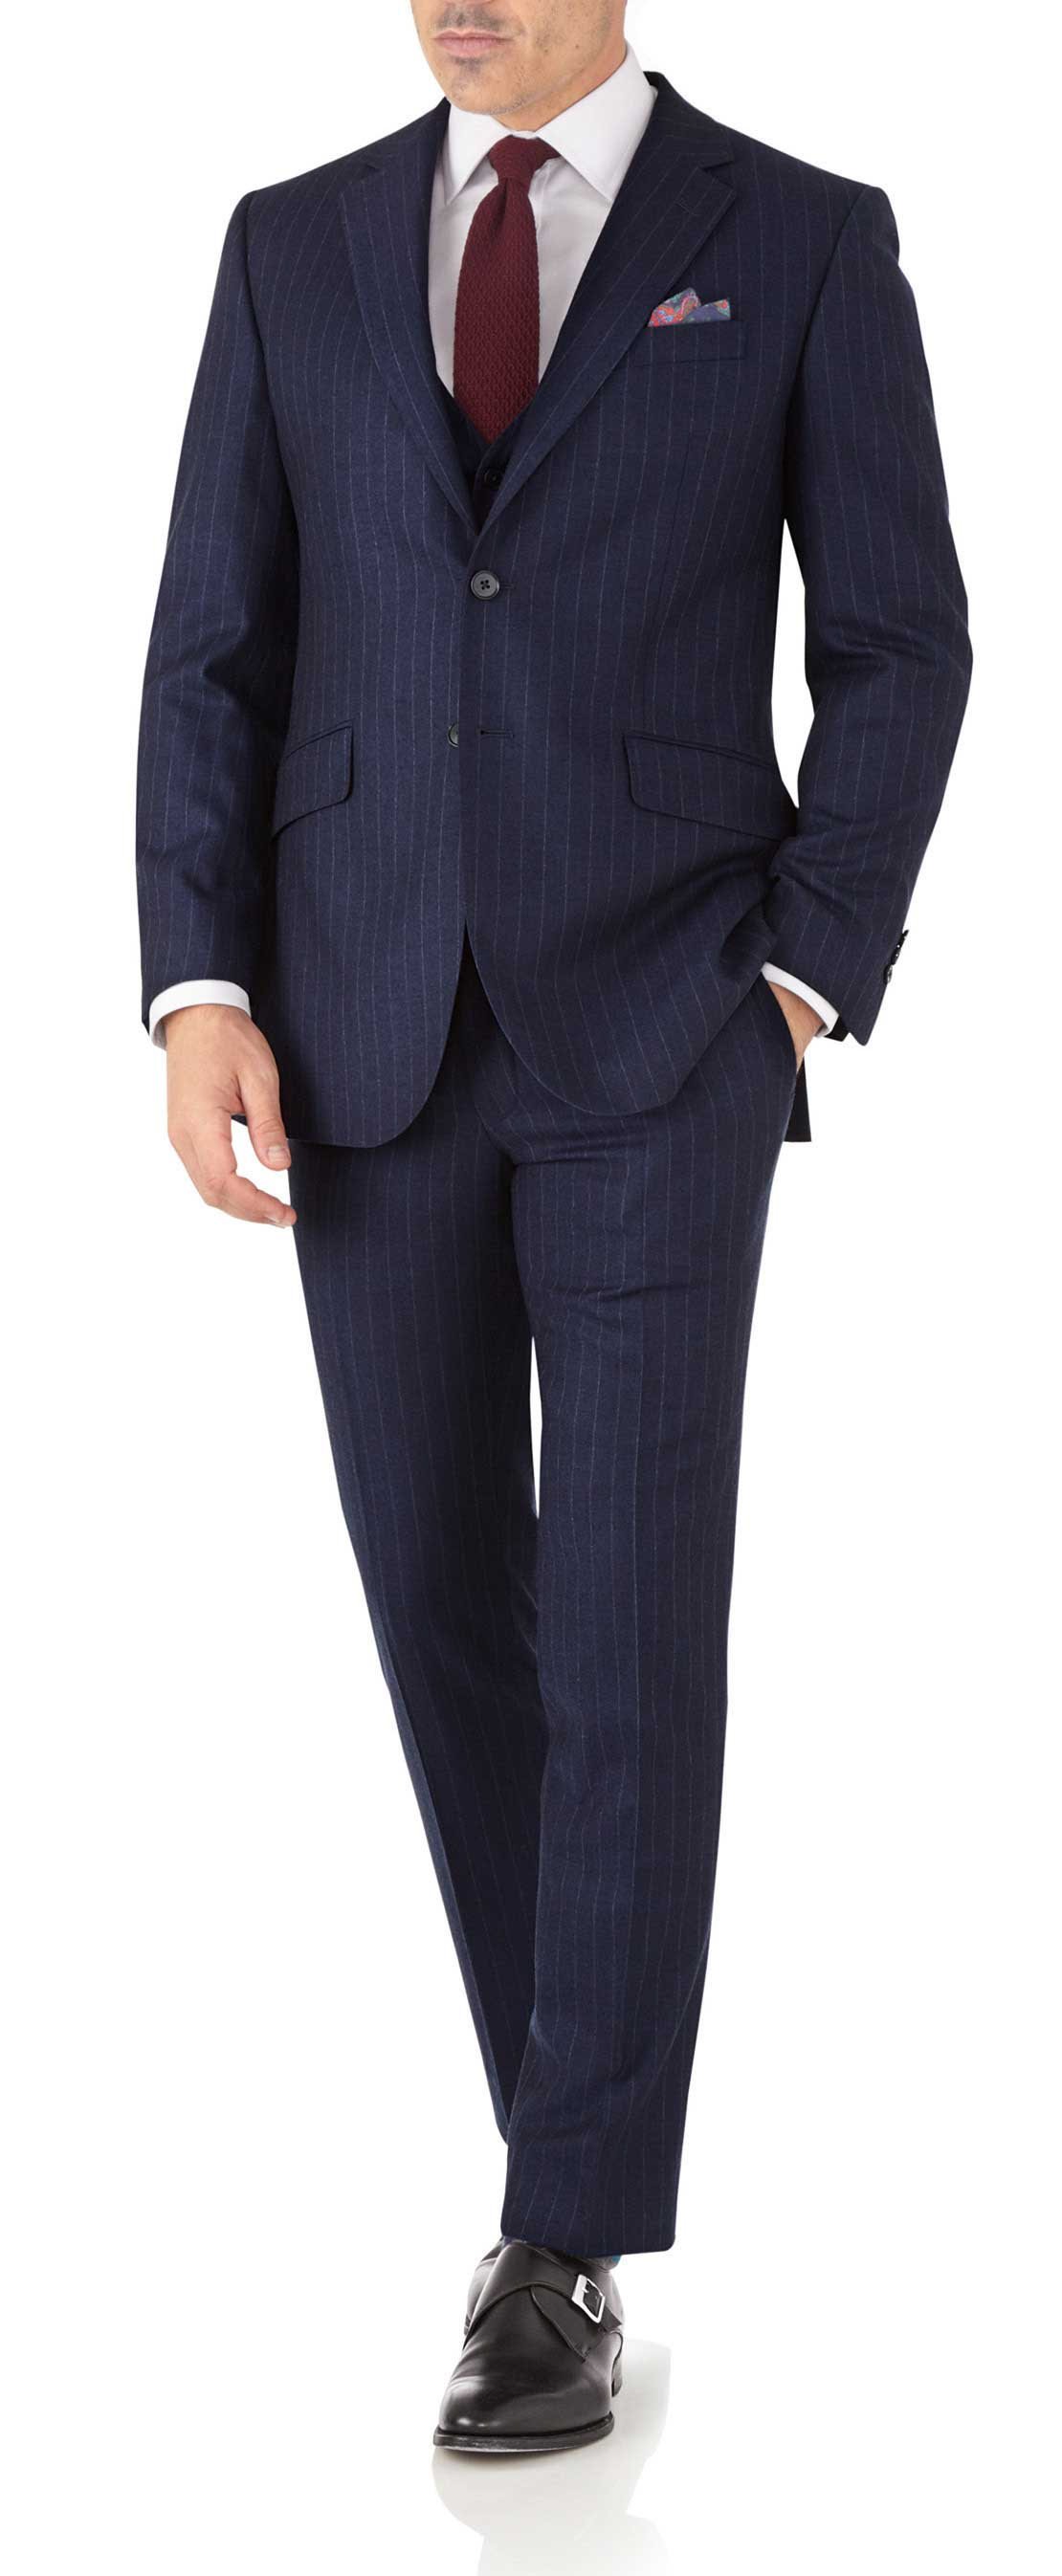 Jos. A. Bank are experts in men's clothing especially suits, dress pants and apparel. Sale items and a clearance center so you can find corporate, casual or business clothes.